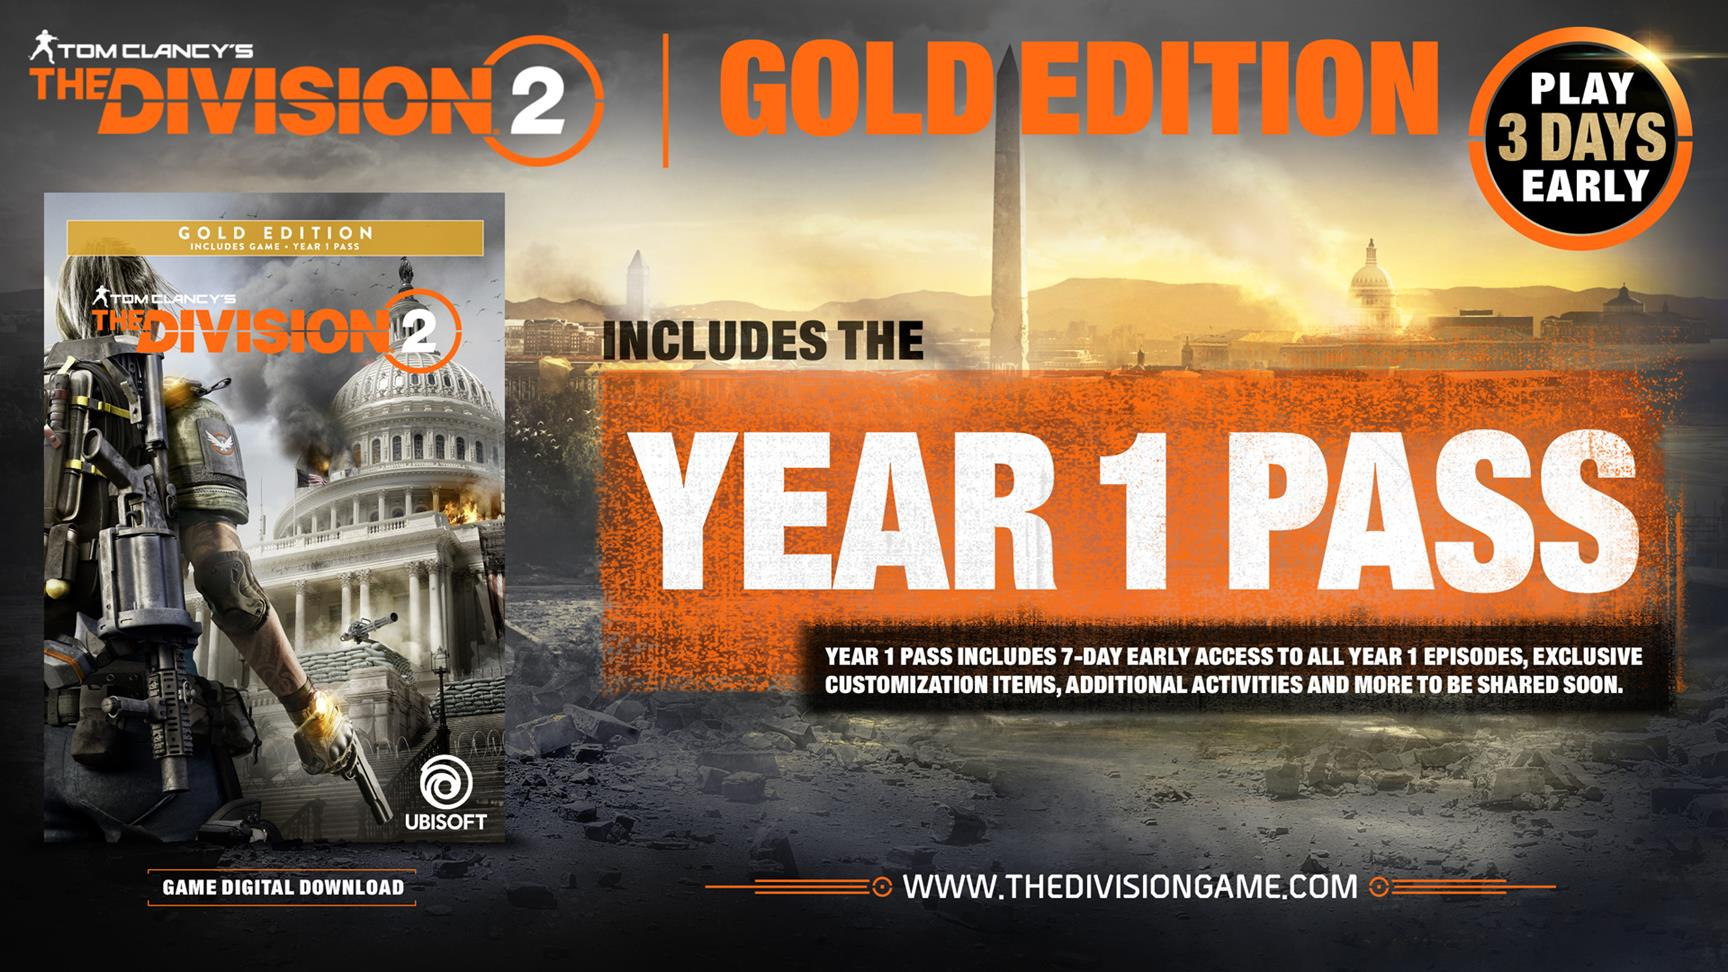 The Division 2 open beta is live: end time, content